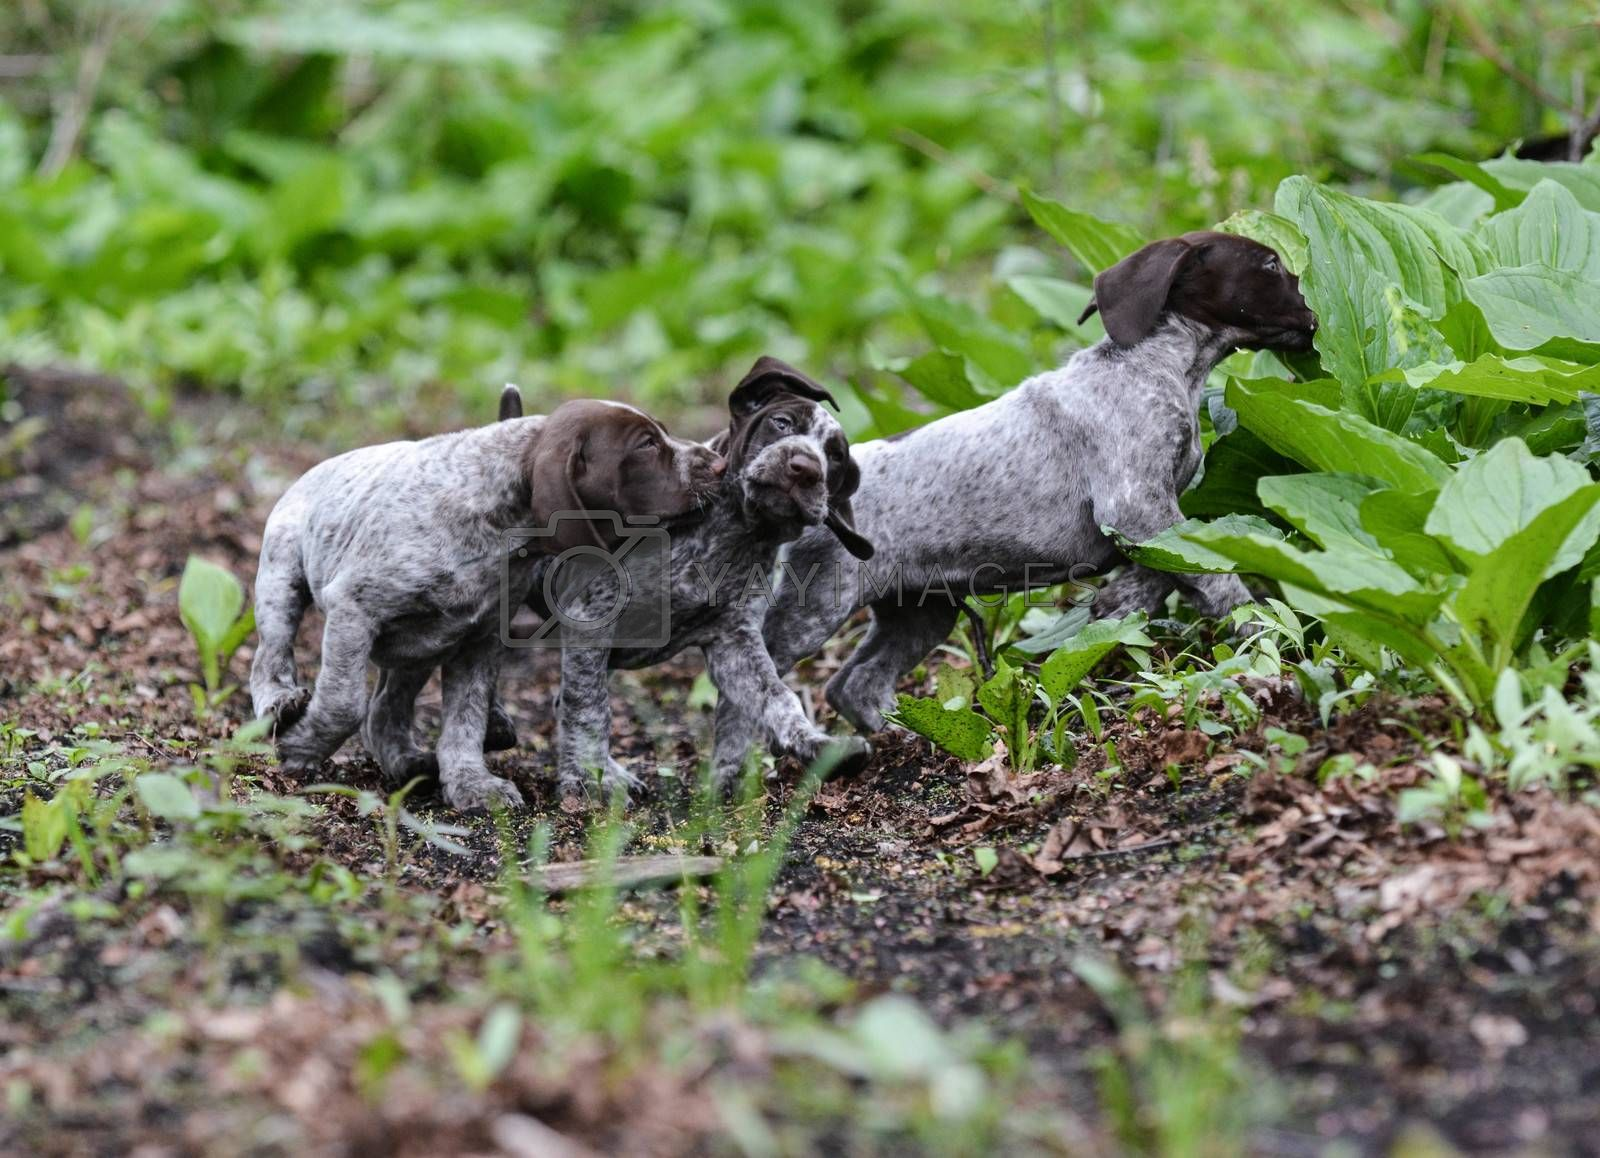 Royalty free image of litter of puppies playing by willeecole123